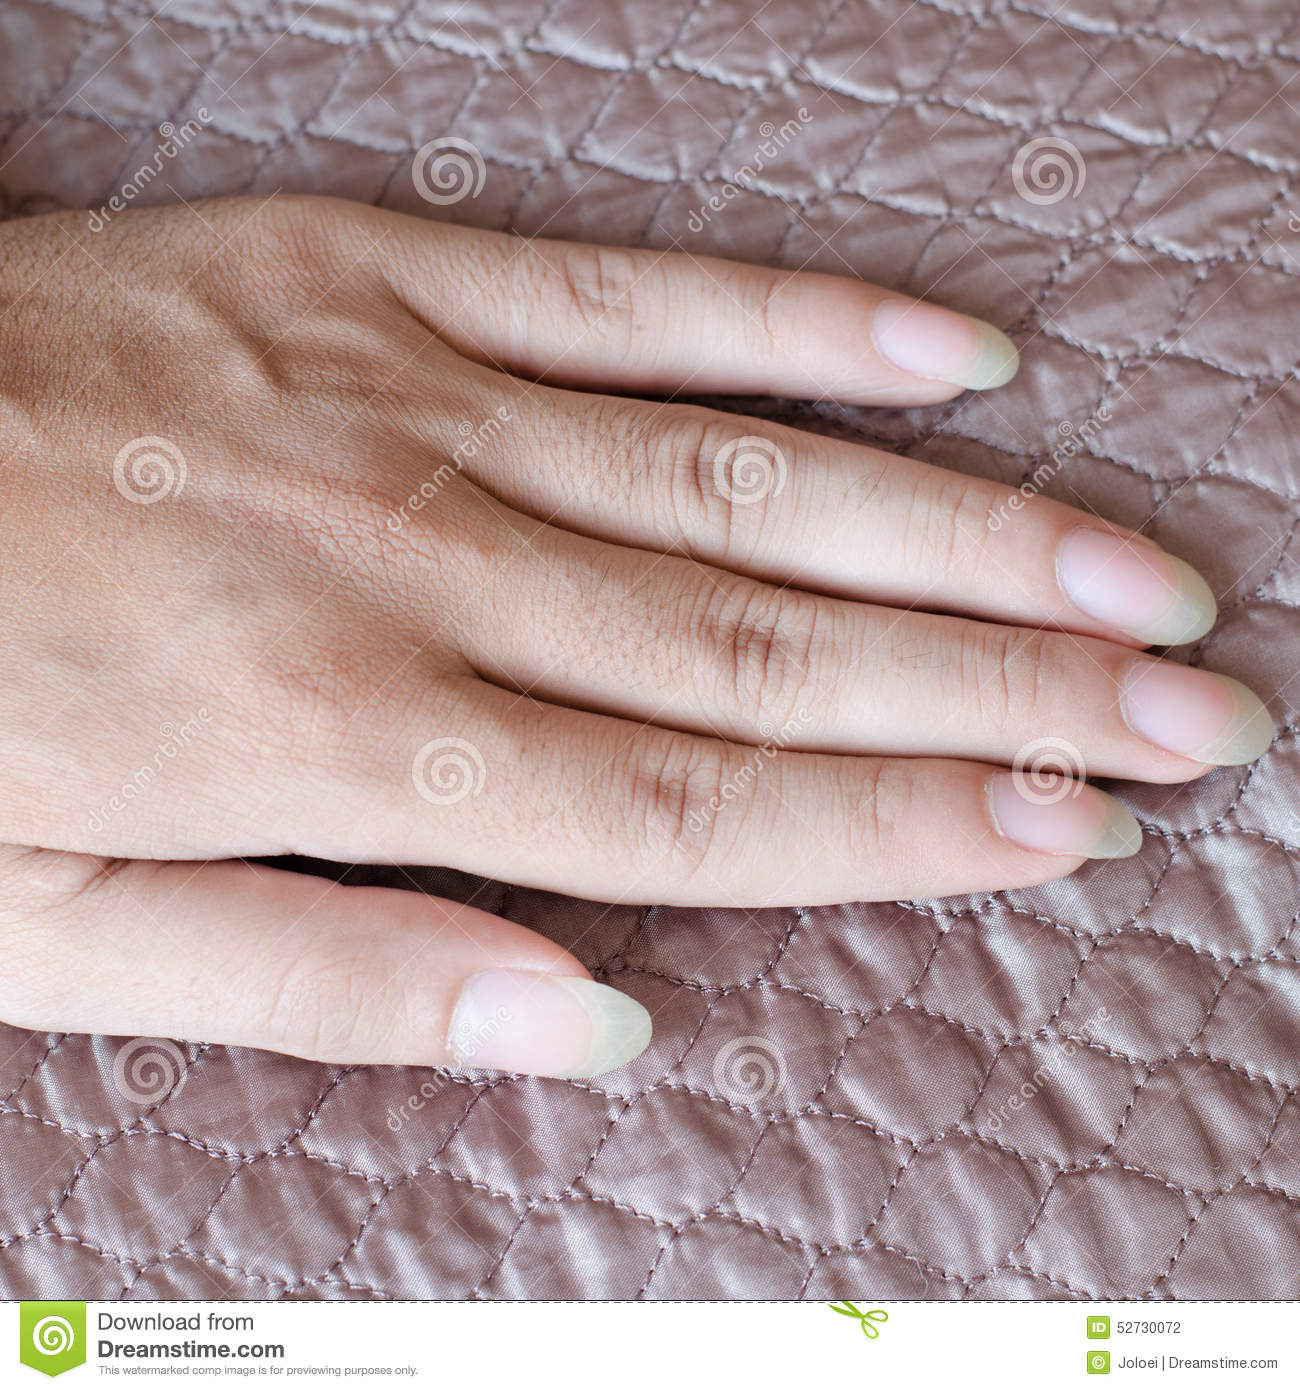 Long fingernails stock photo. Image of dirty, fingernails - 52730072